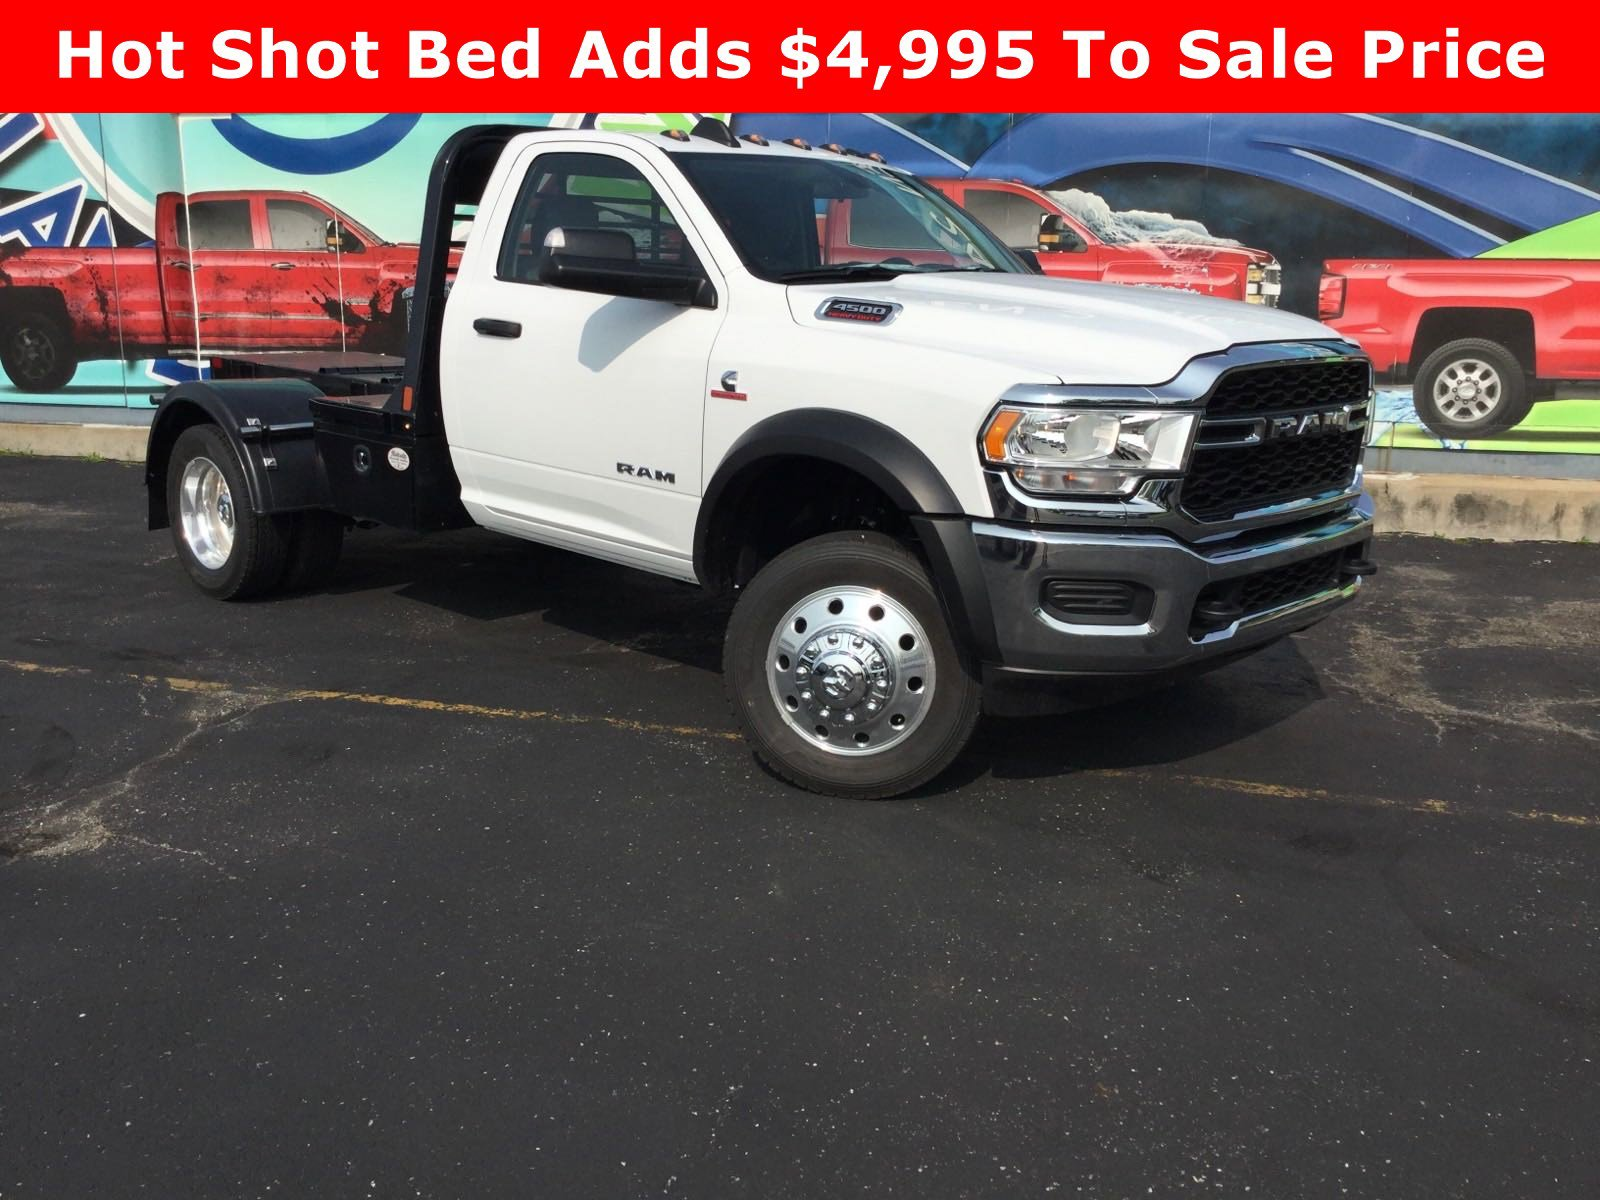 New 2020 RAM 4500 Chassis Cab Tradesman 4x4 Regular Cab